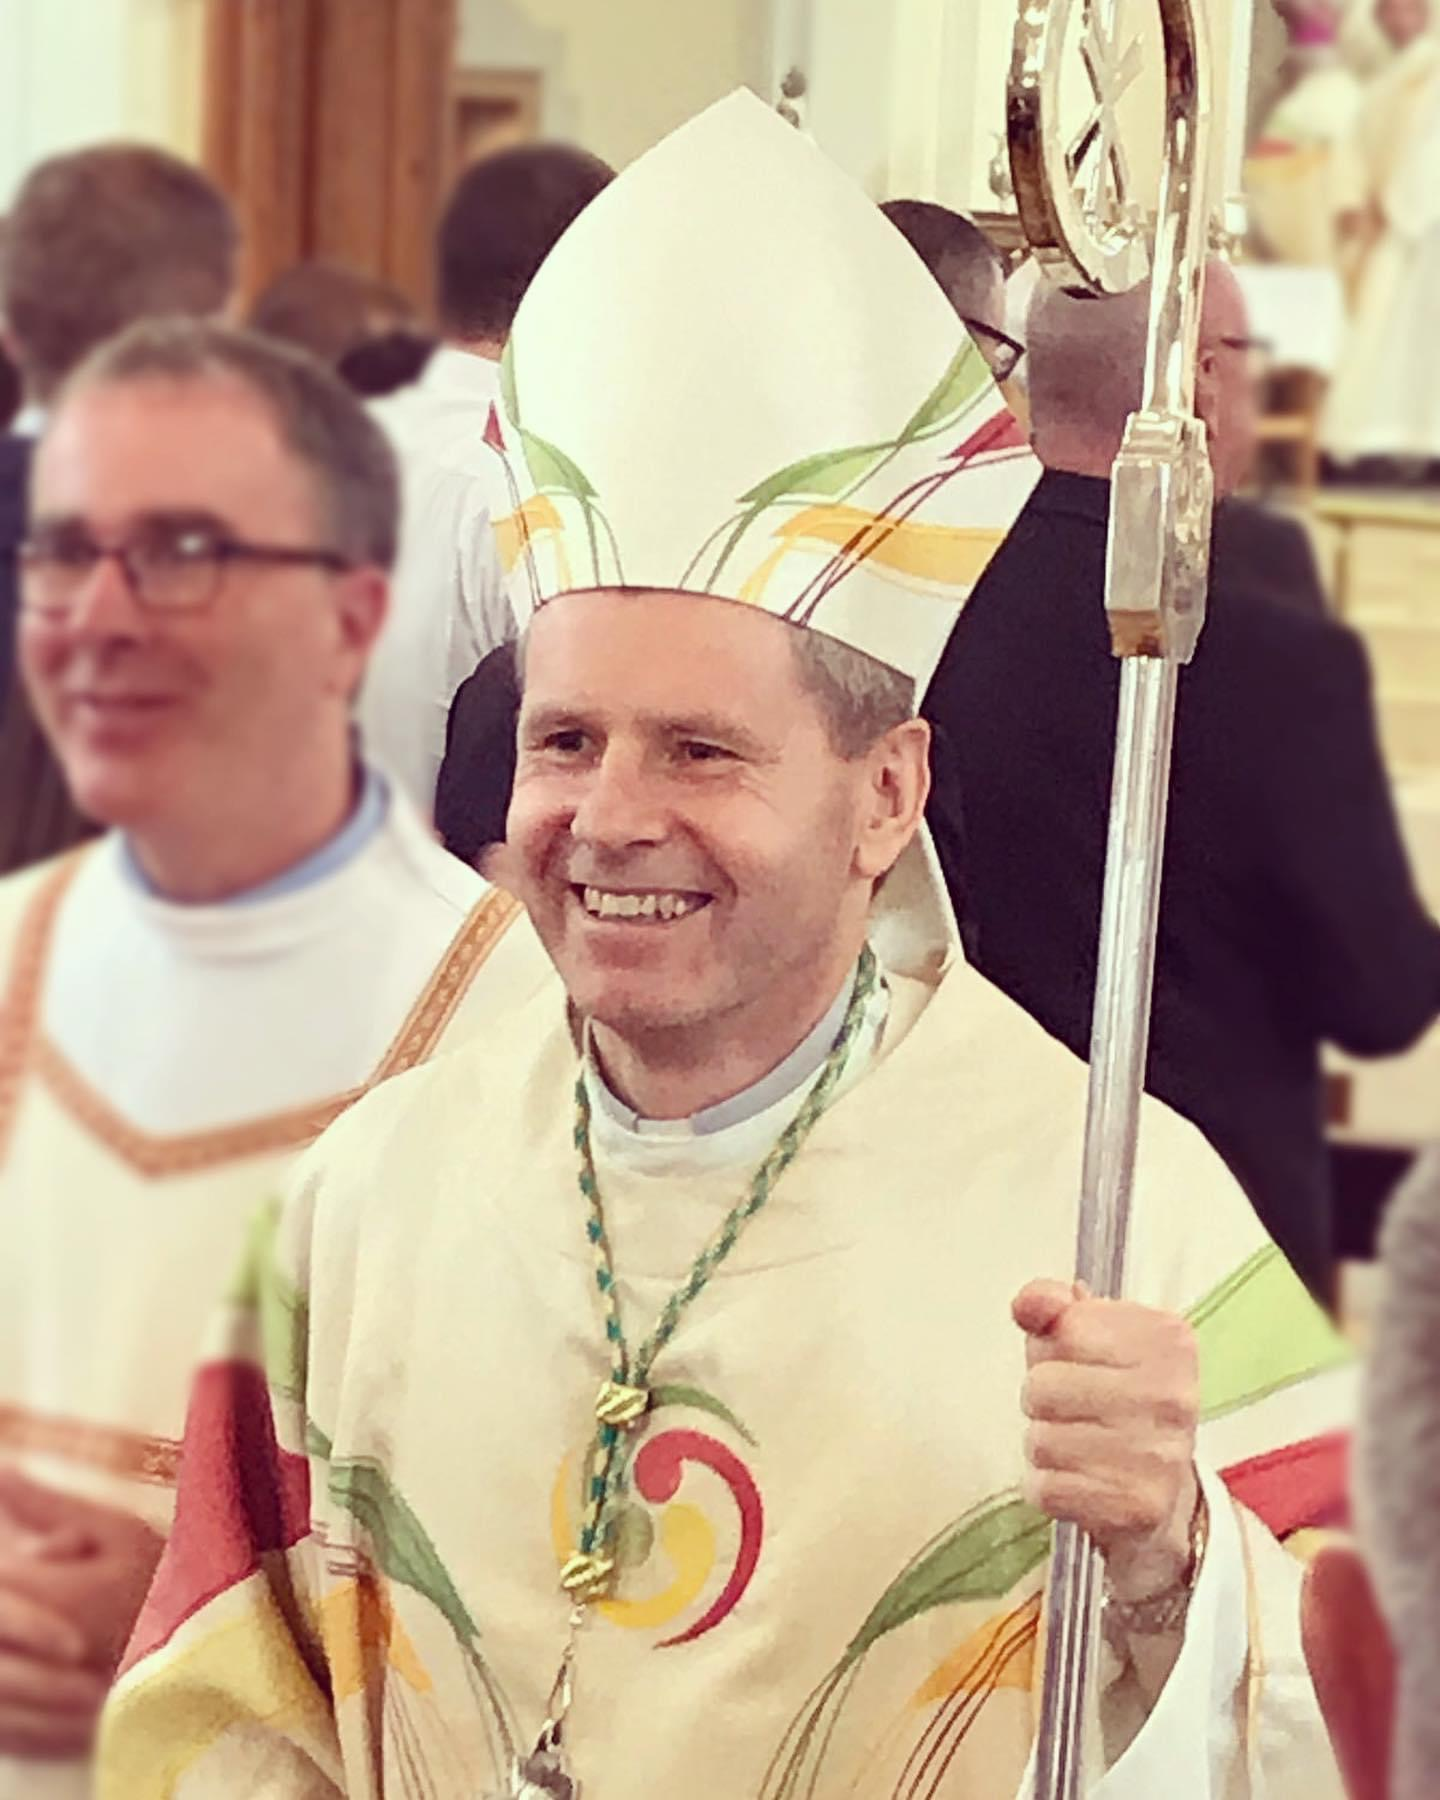 God Bless Bishop Fintan on the First Anniversary of his Episcopal Ordination